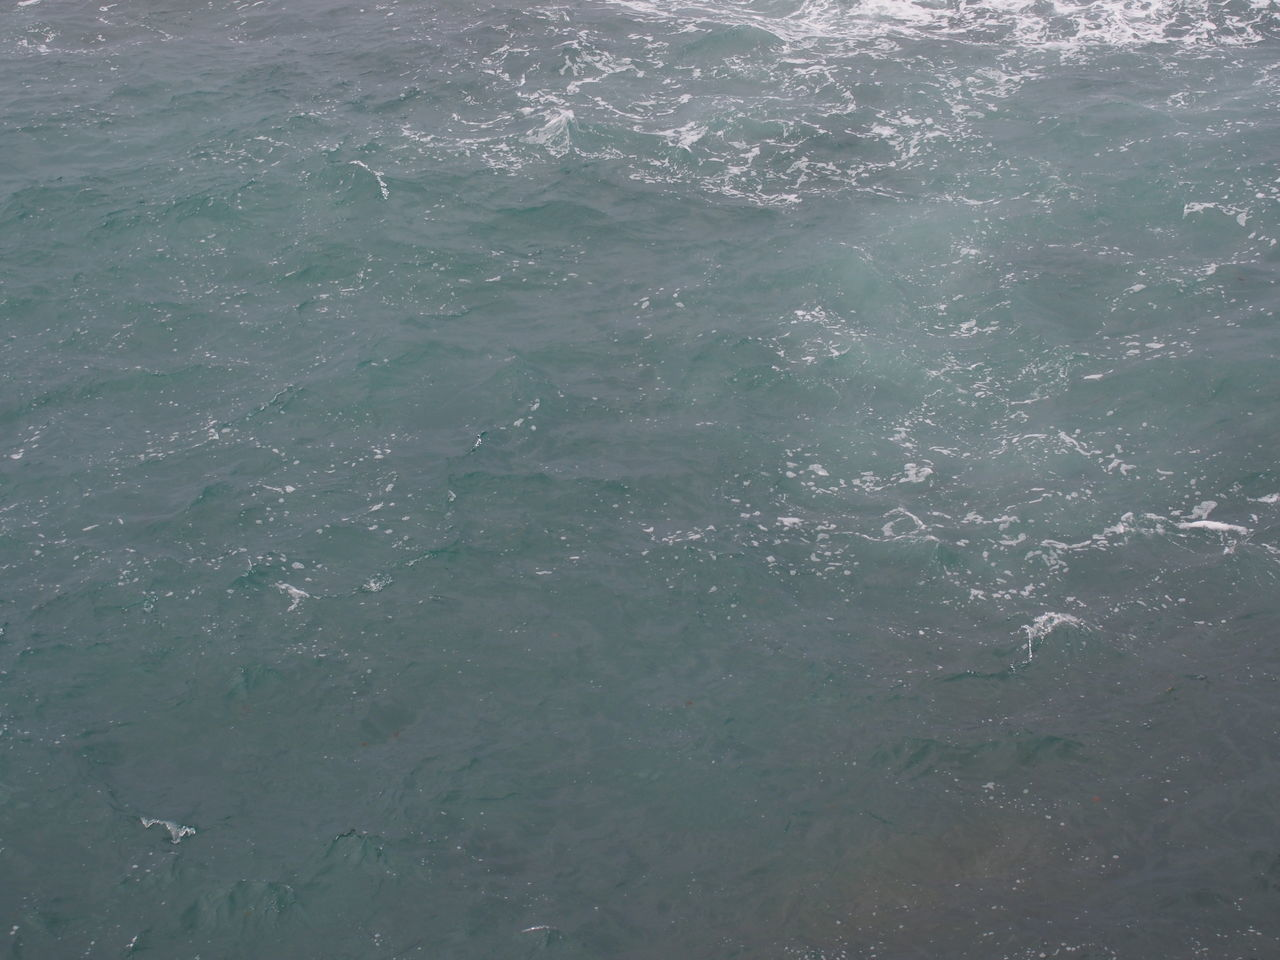 backgrounds, water, full frame, no people, nature, sea, day, outdoors, close-up